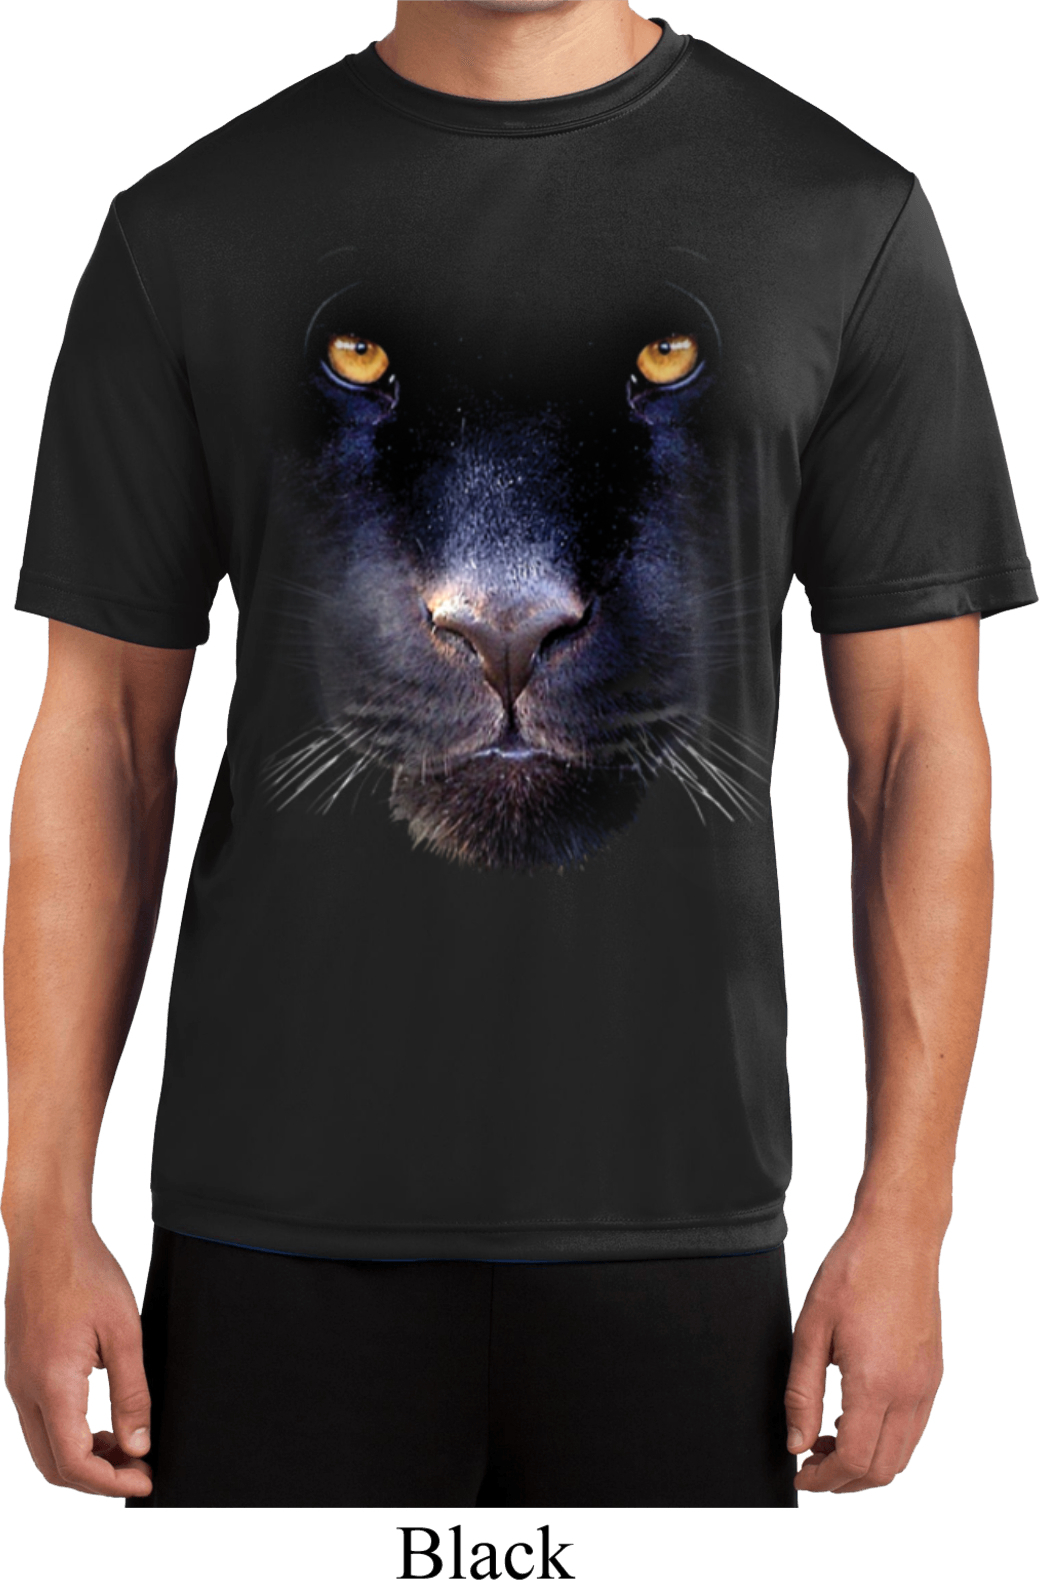 Mens shirt big panther face moisture wicking tee t shirt for Sweat wicking t shirts